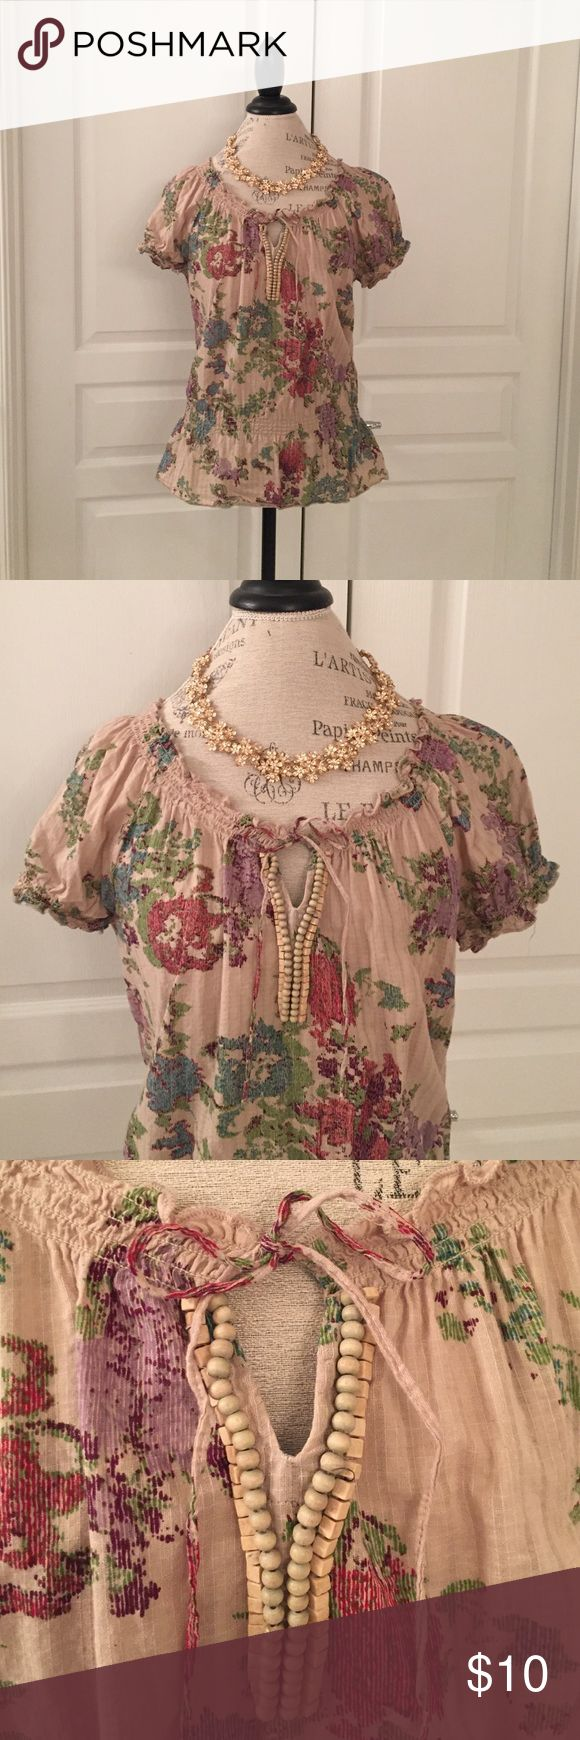 Bohemian Floral Beaded Blouse Peplum style bohemian blouse with front tie and beading. Beading detail make of square and round wooden beads. Gently worn, though still in great shape! Adorable dressed up or down. Size medium. Relativity Tops Blouses